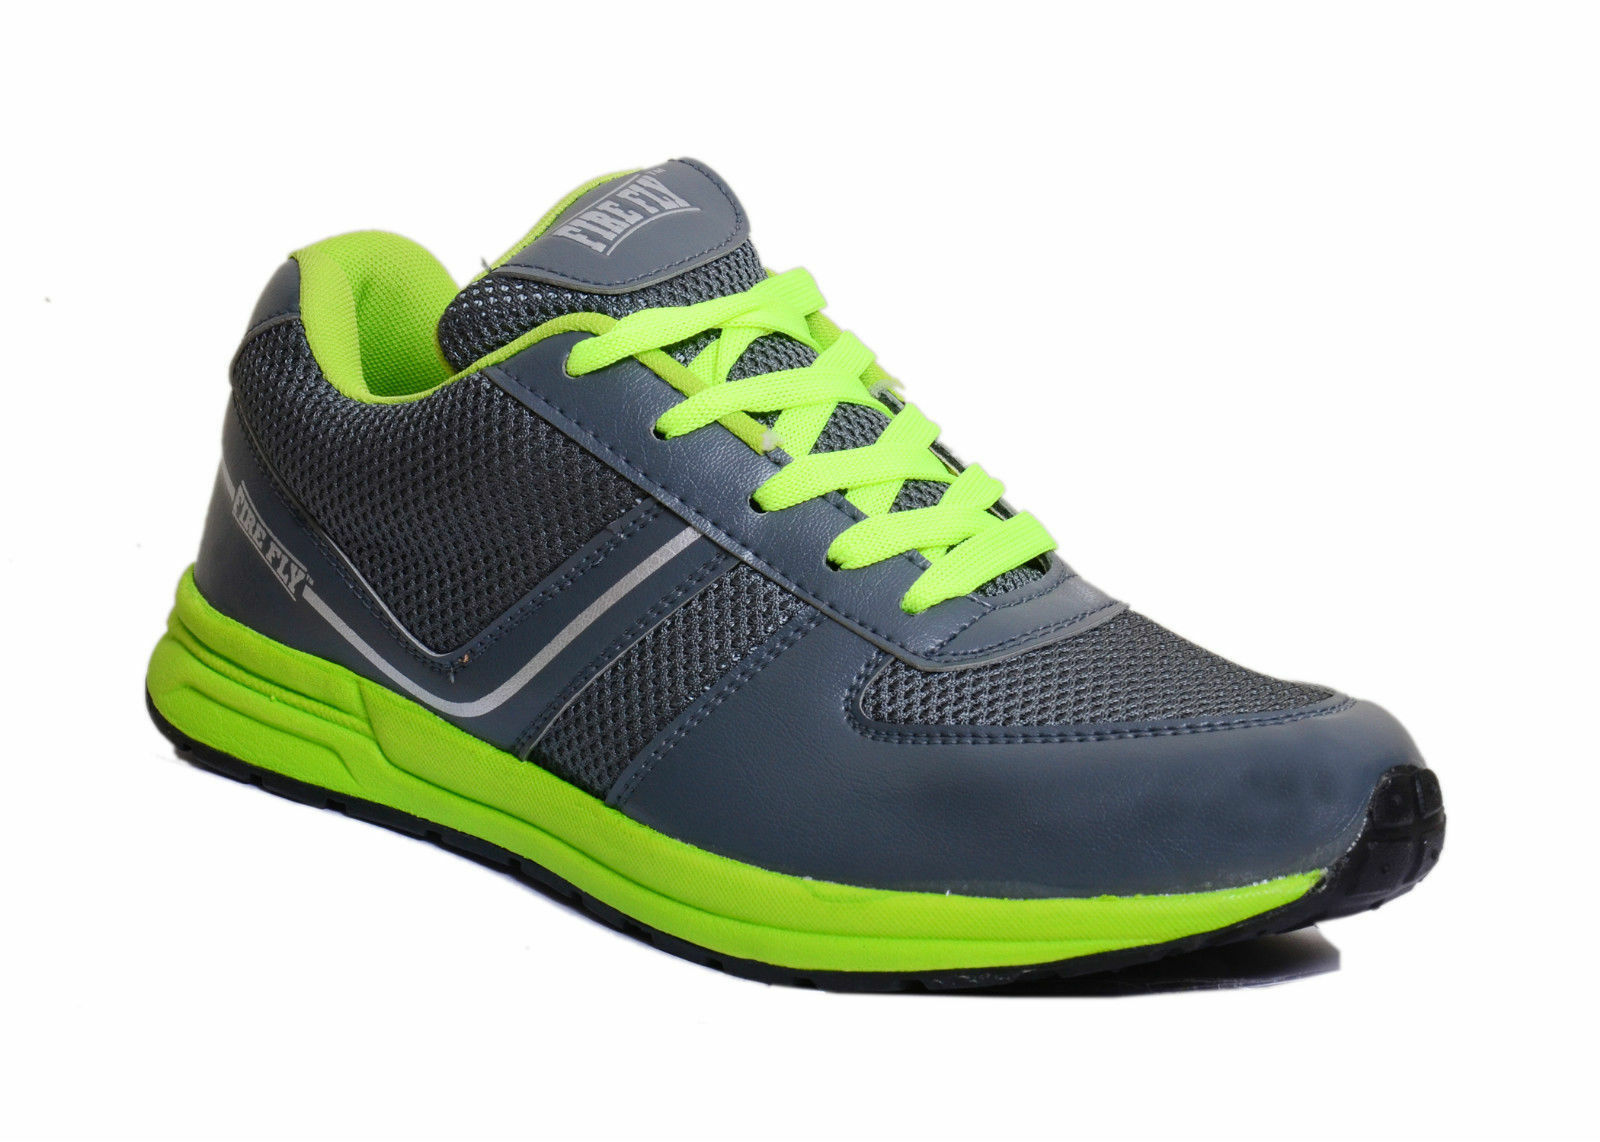 Men's Running Breathable shoes Sports Casual  Athletic Sneakers ROAD RUNNER